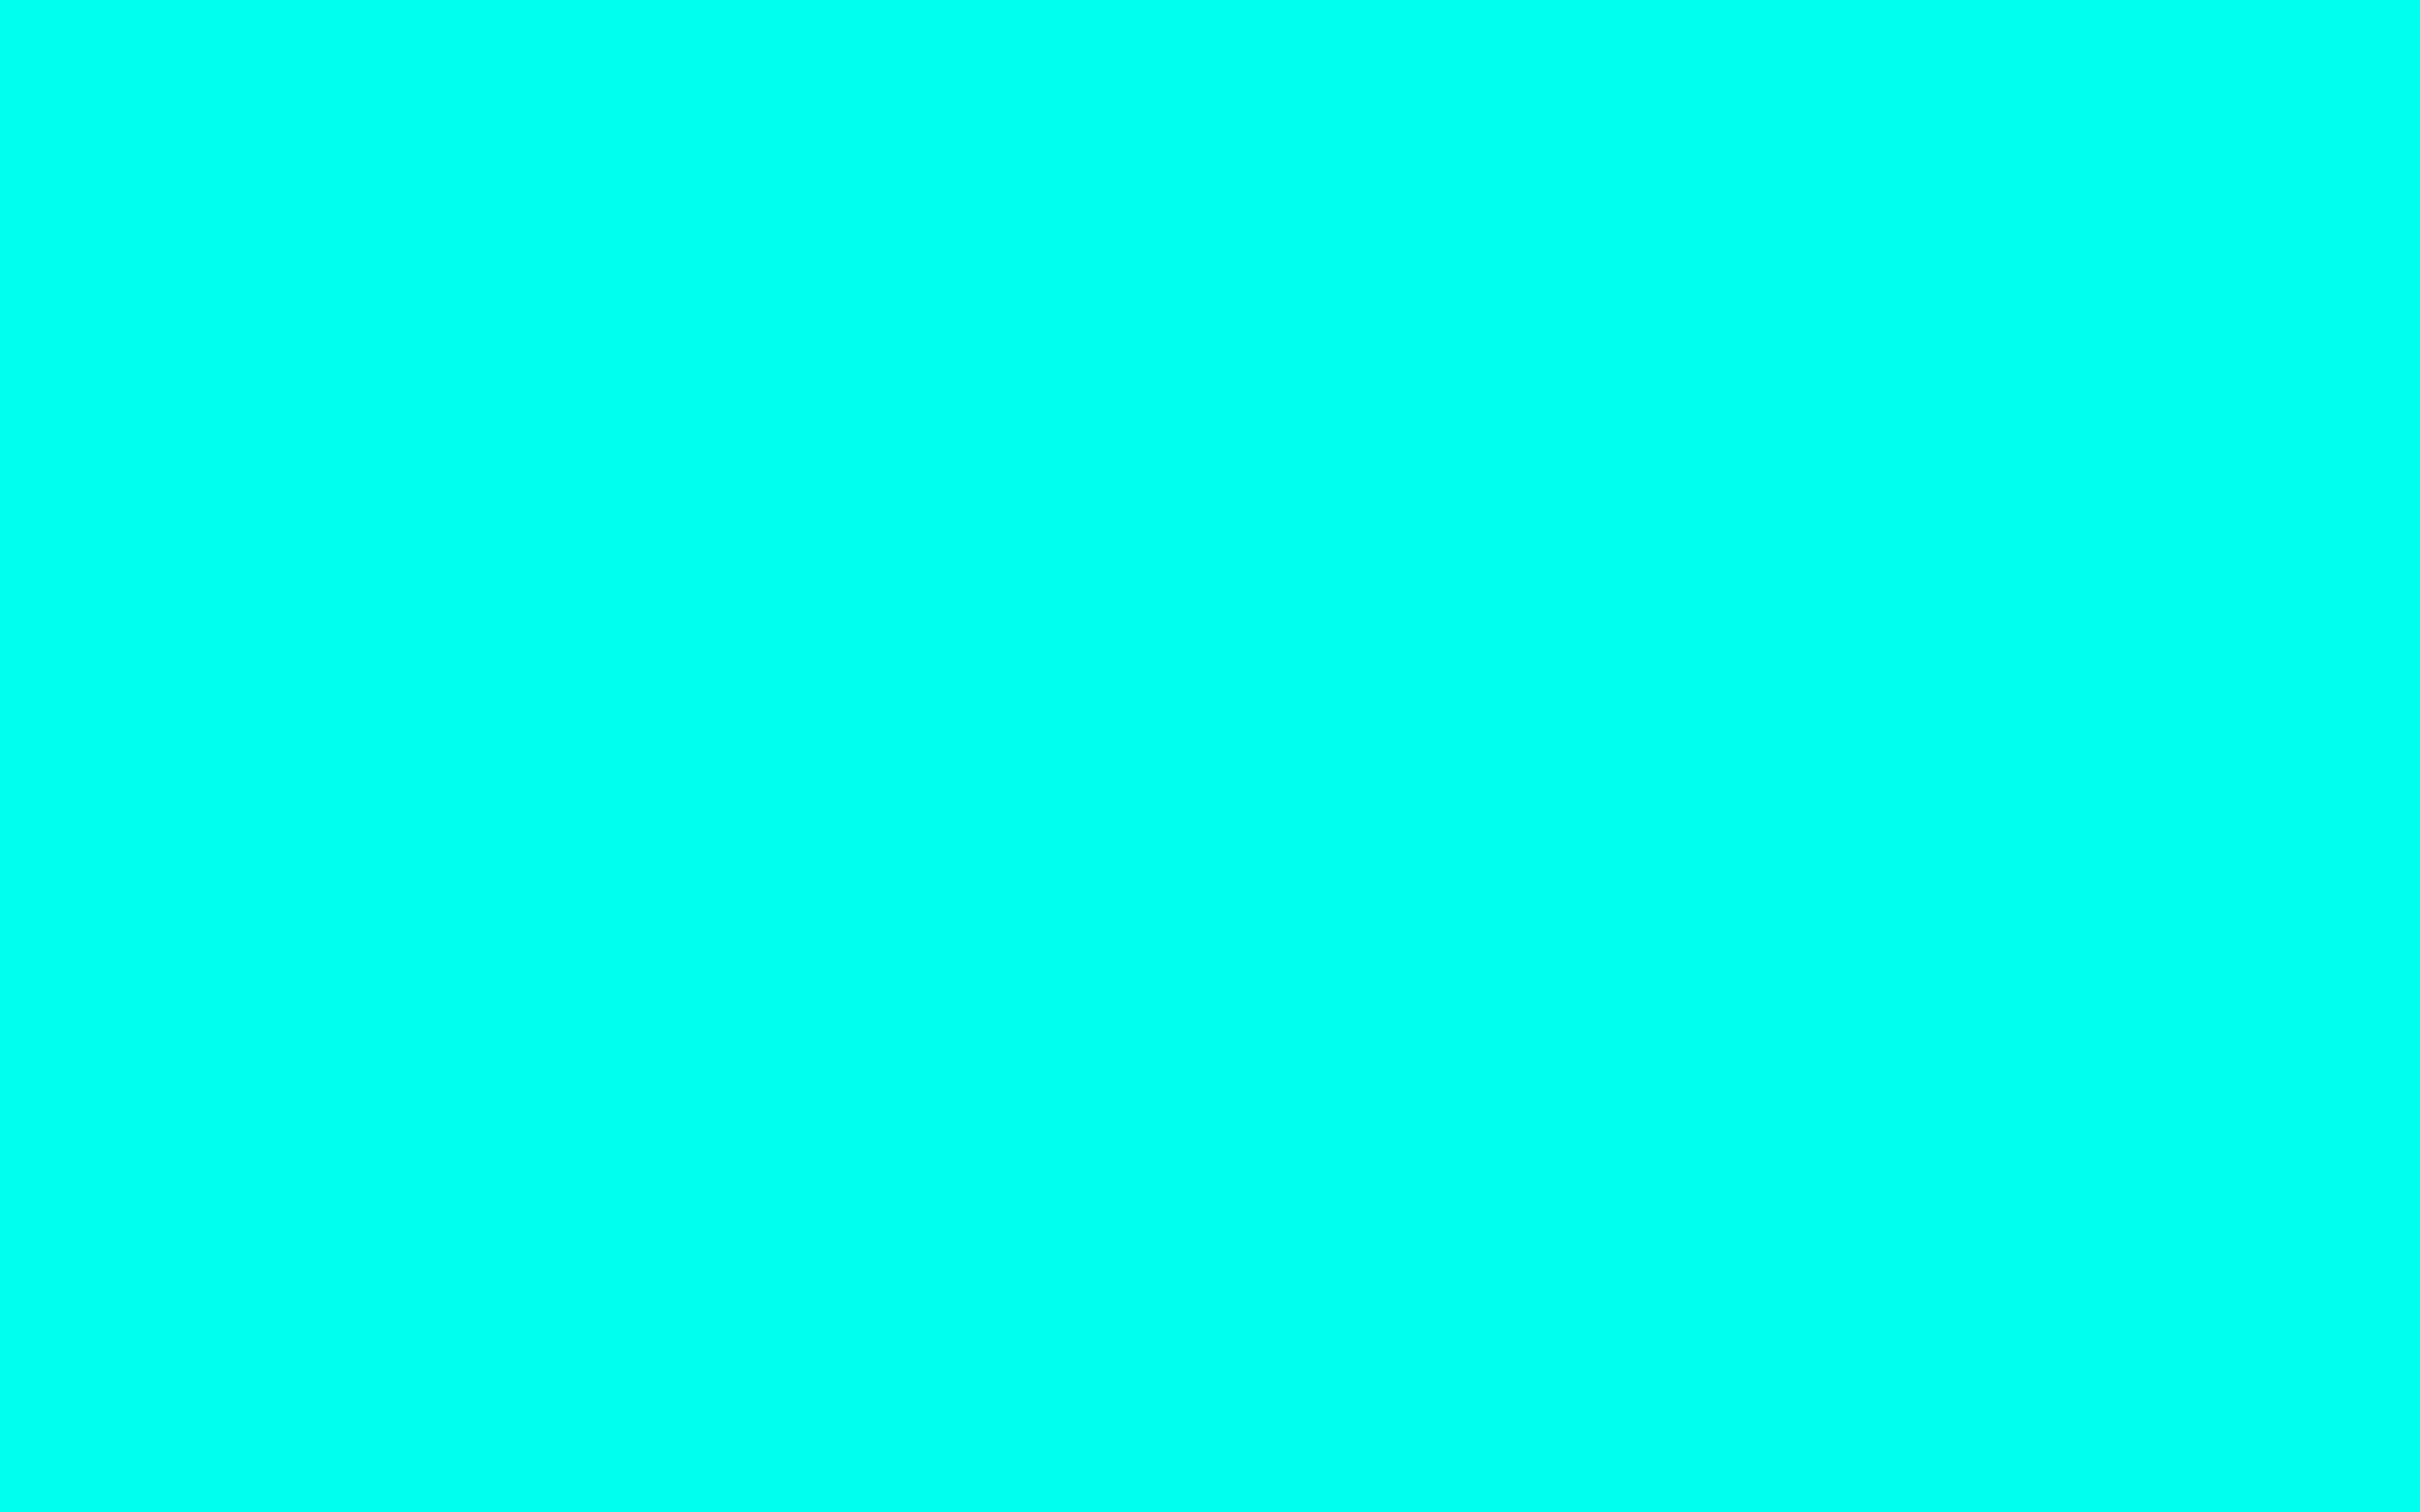 2560x1600 turquoise blue solid color background